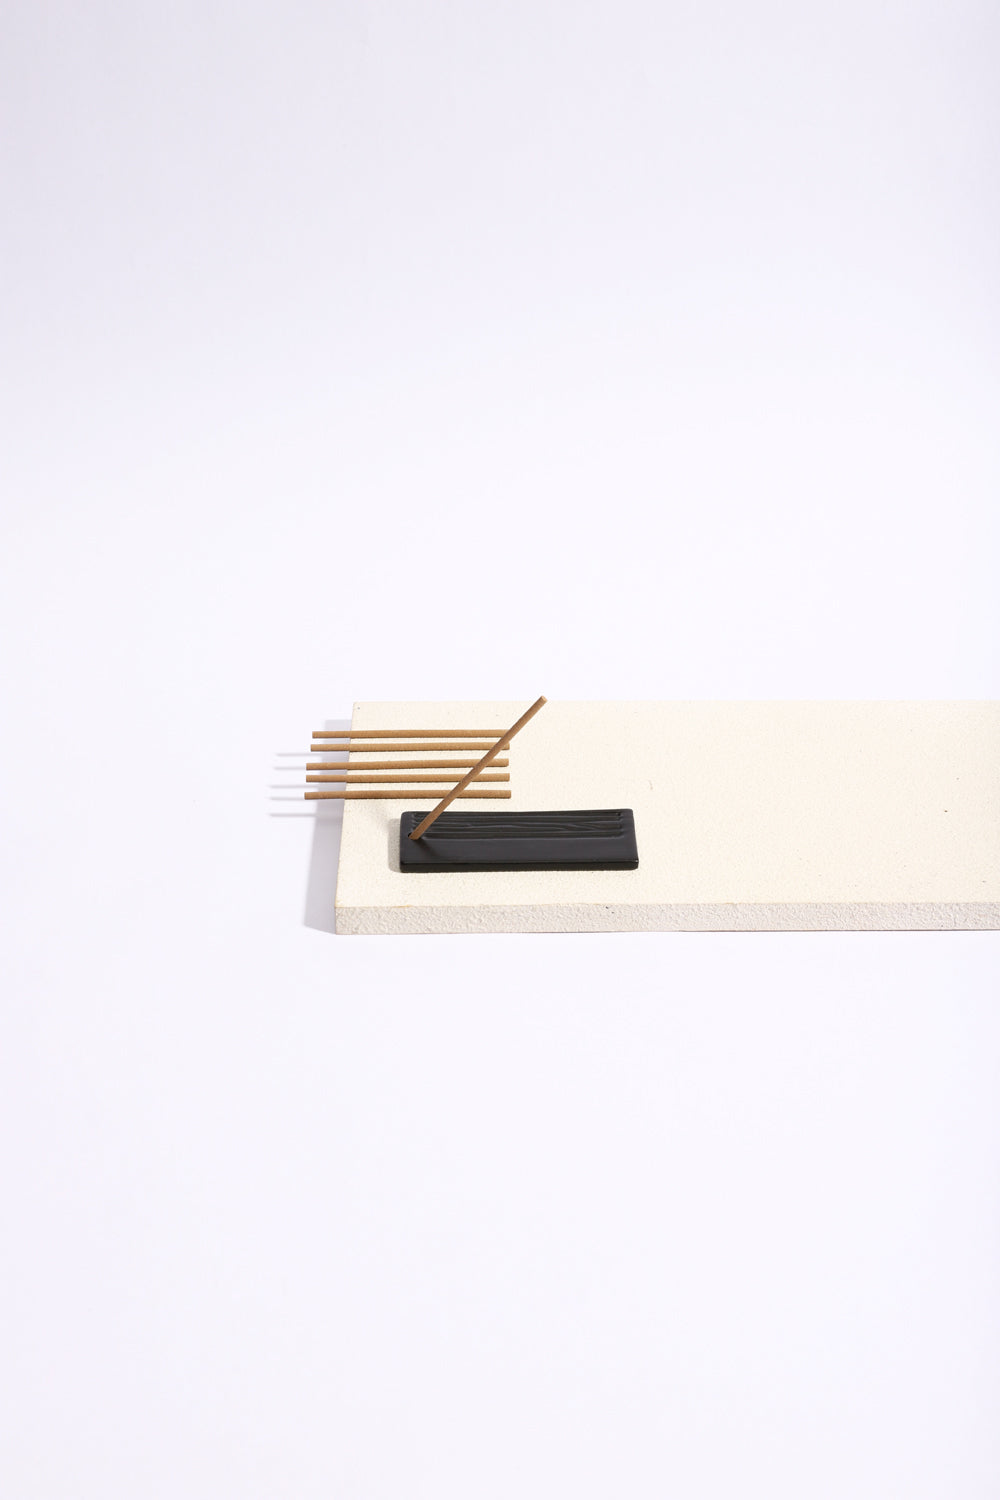 Bergamot Travel Incense Stick Kit